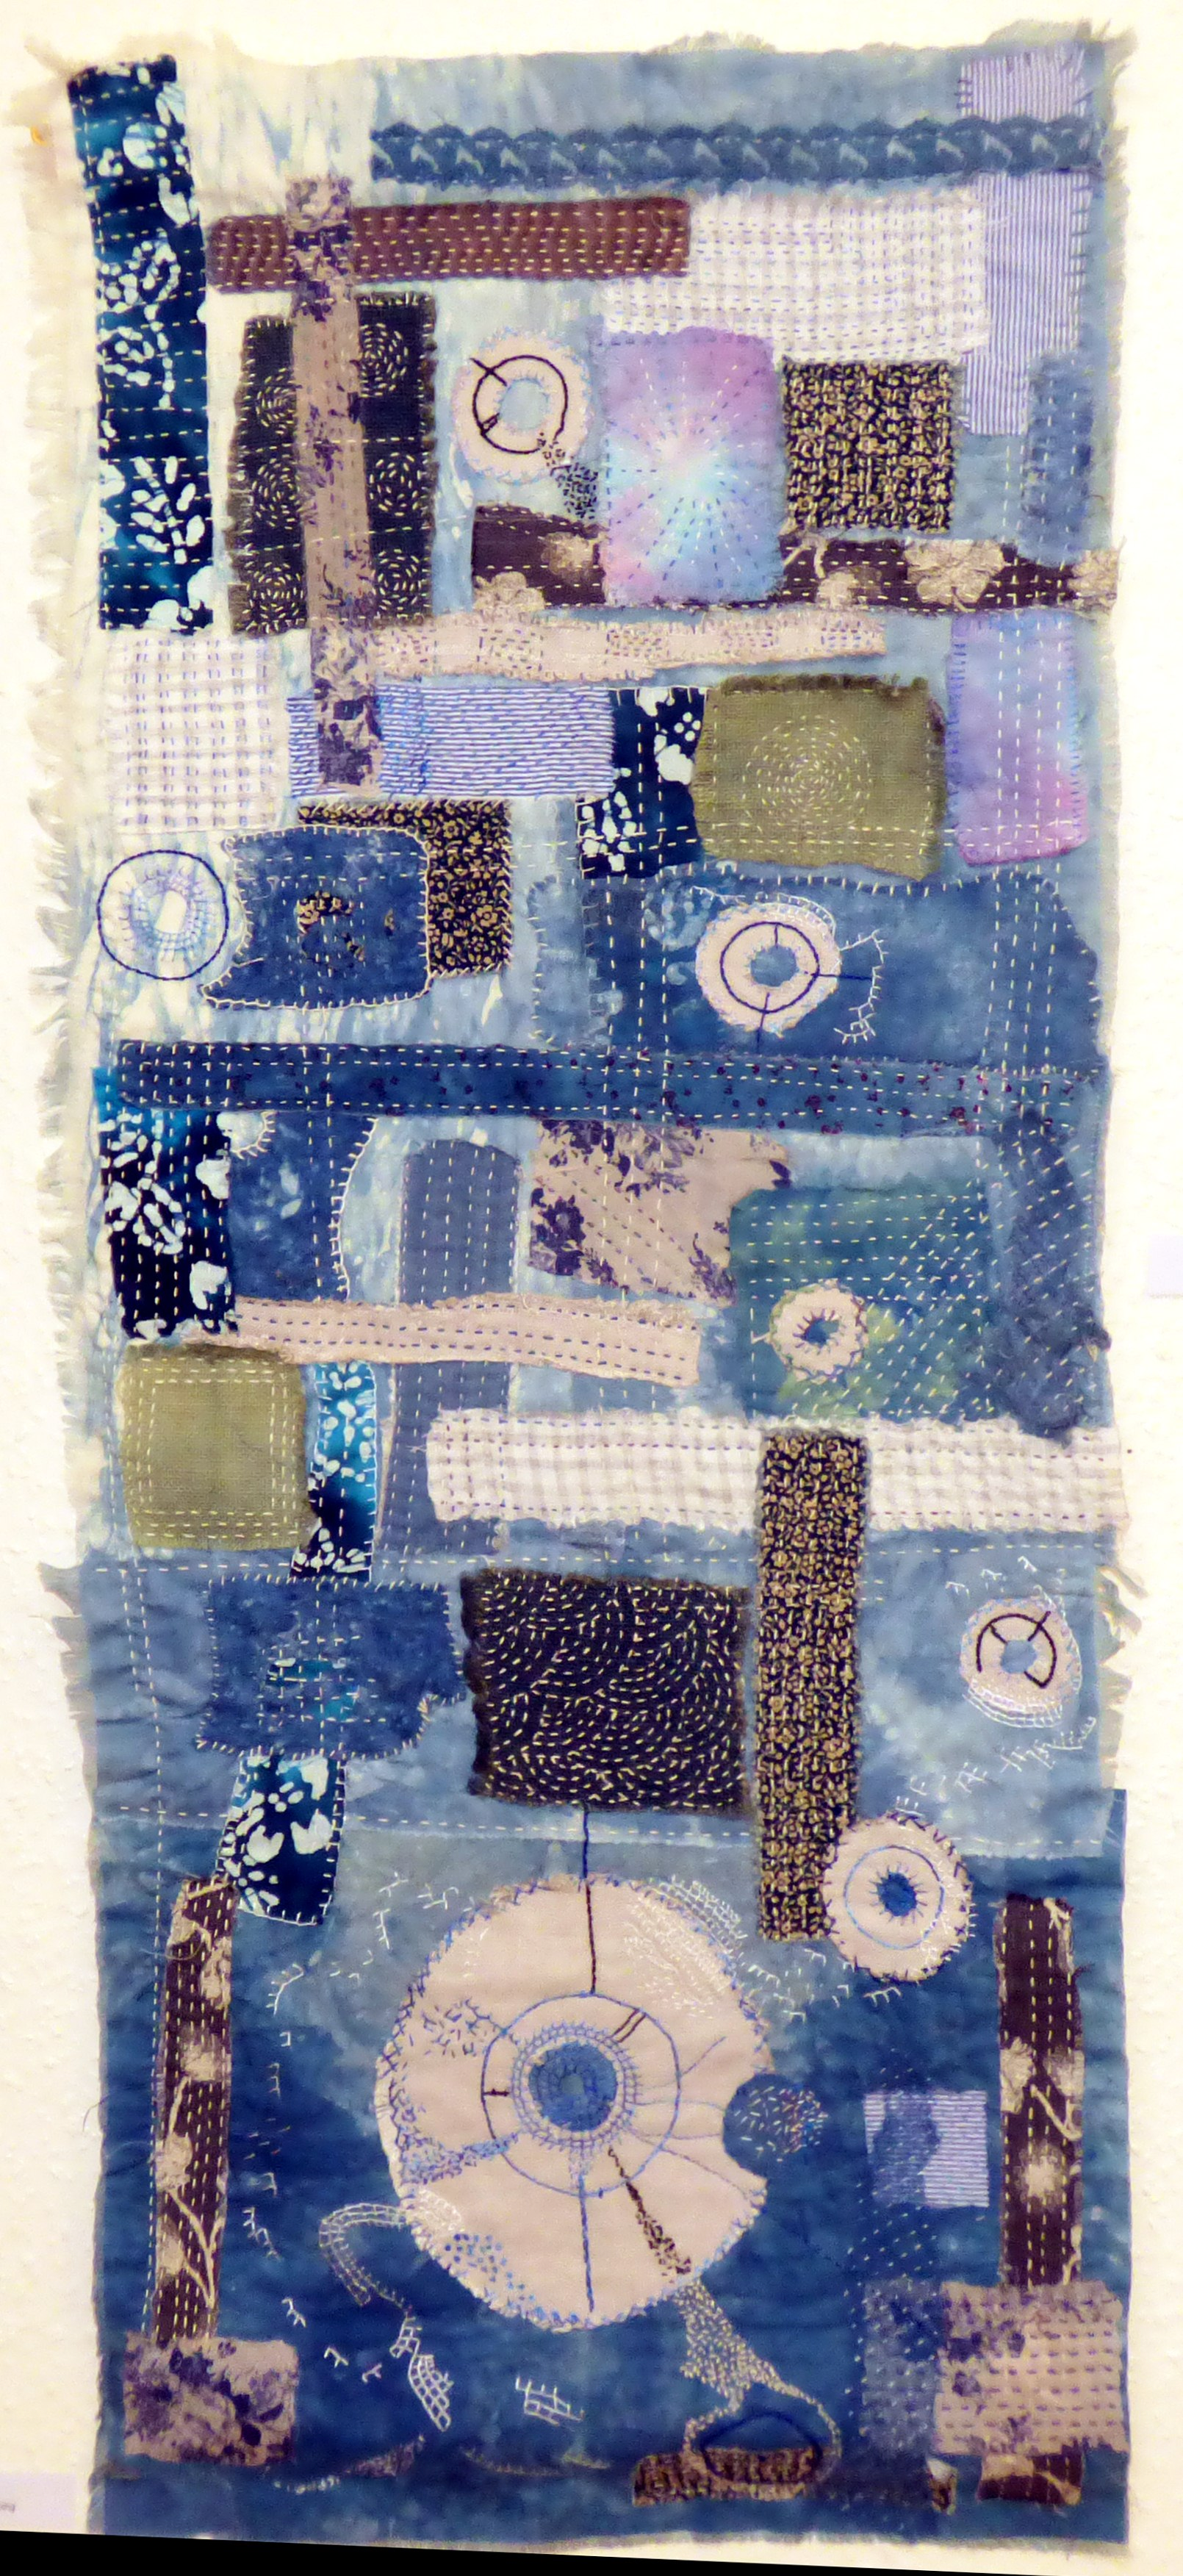 BORO CLOTH by Janet Janis, patchwork and hand stitching